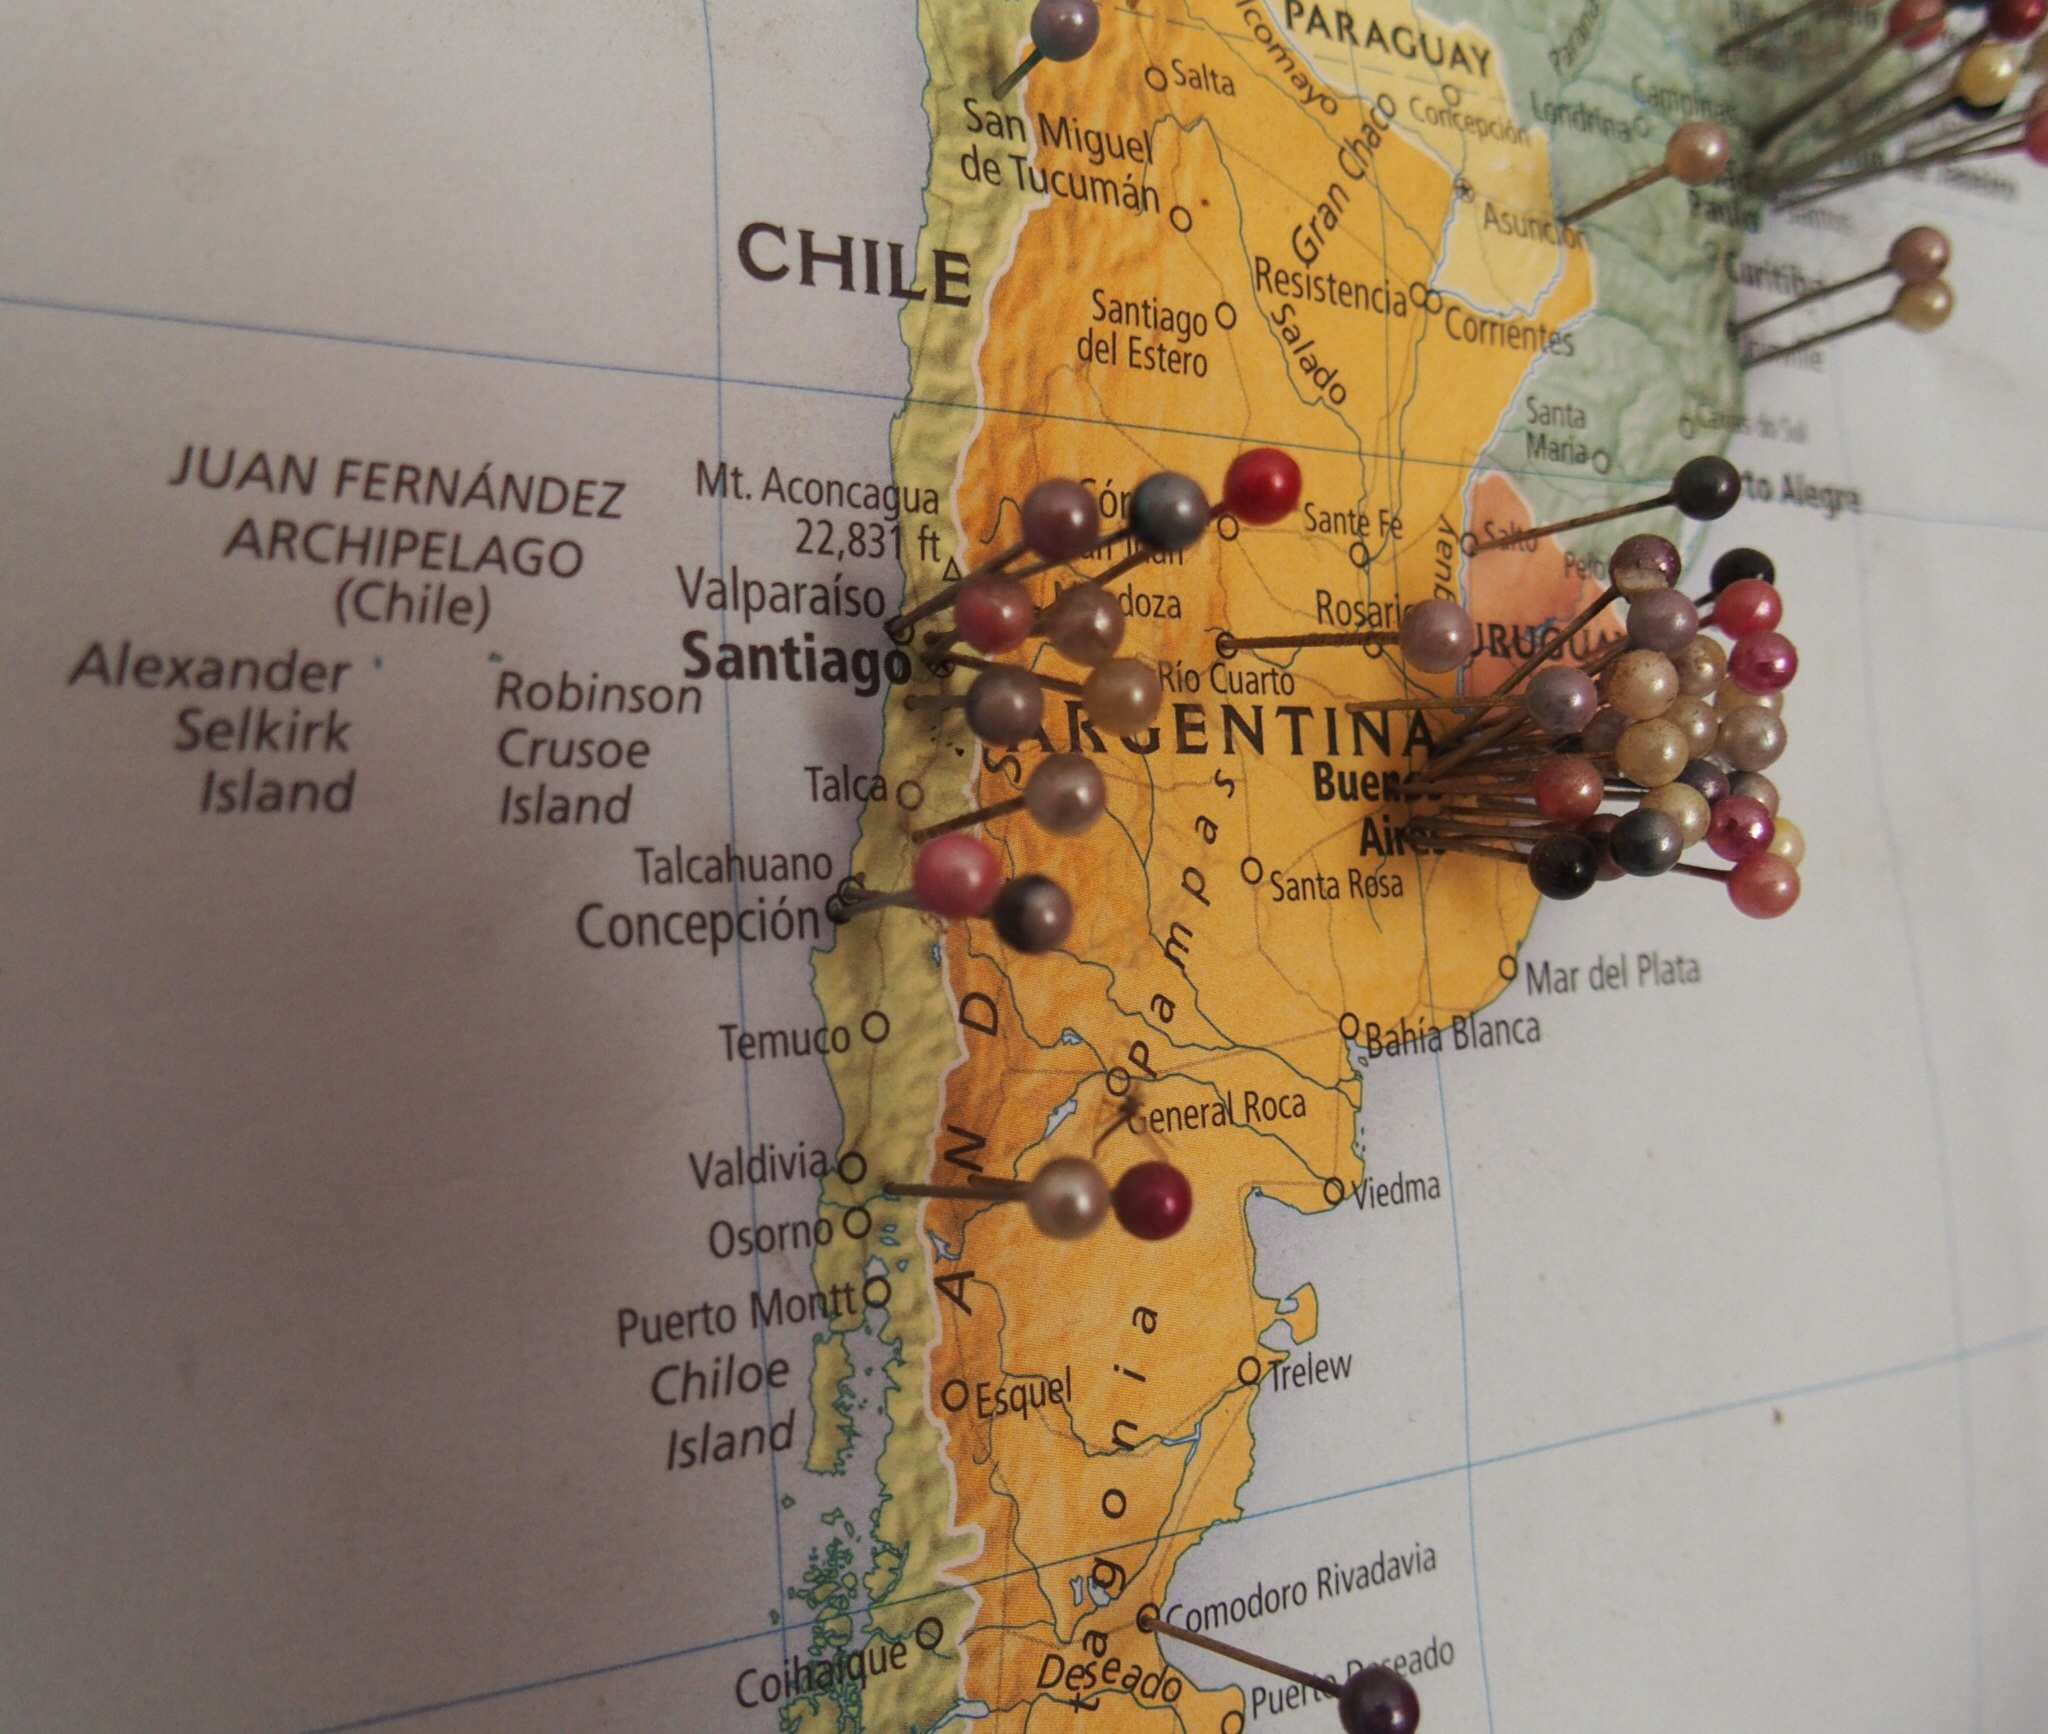 ROUTE MAP SOUTH AMERICA HORCAMOTO - Map my route google maps